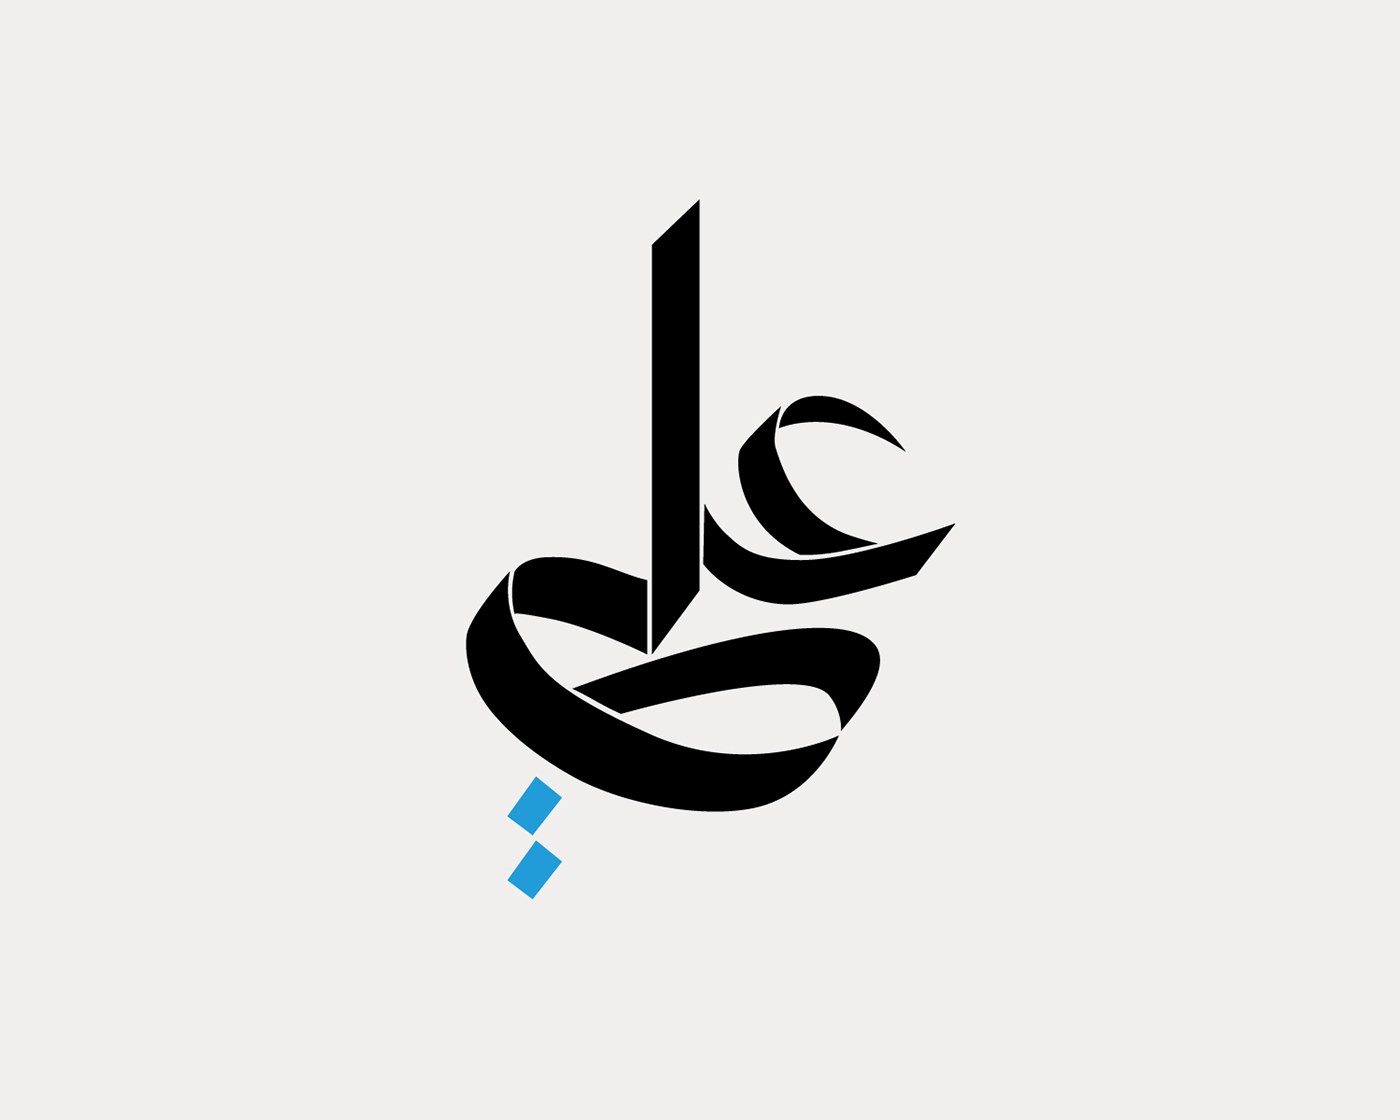 Select Arabic Calligraphy Identities On Behance: arabic calligraphy tools